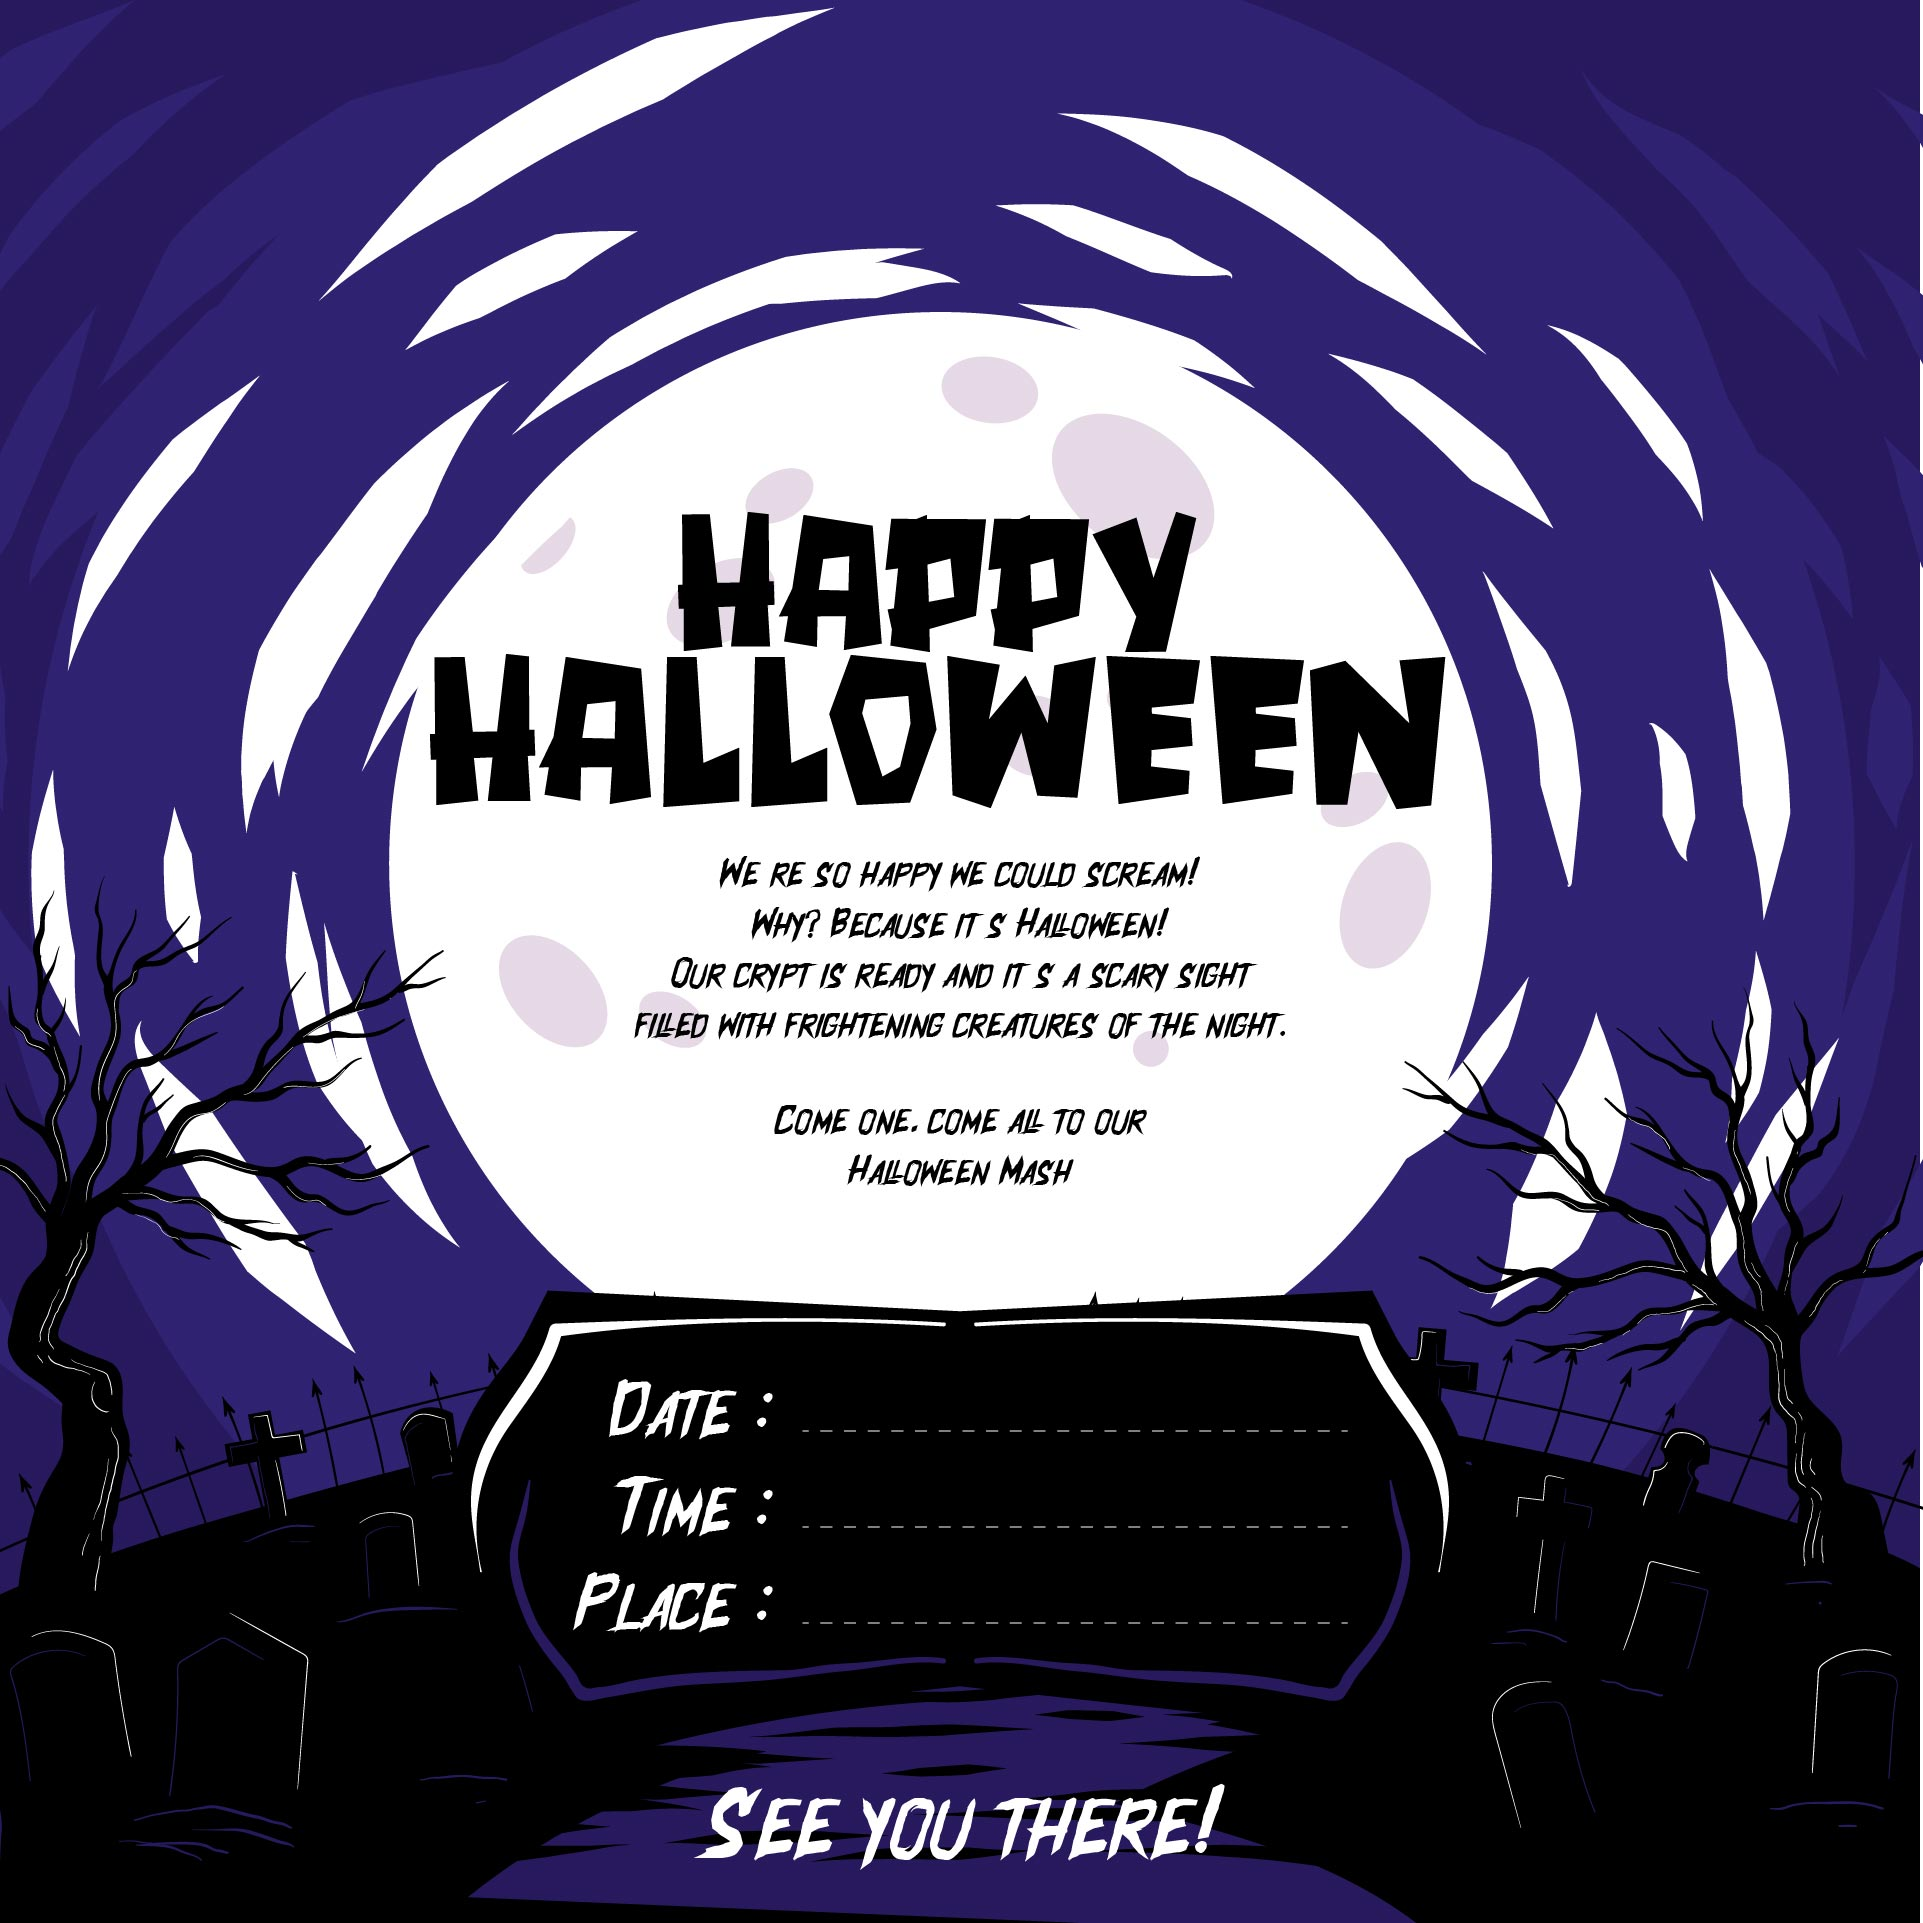 Halloween Invitation Rhymes is luxury invitation template